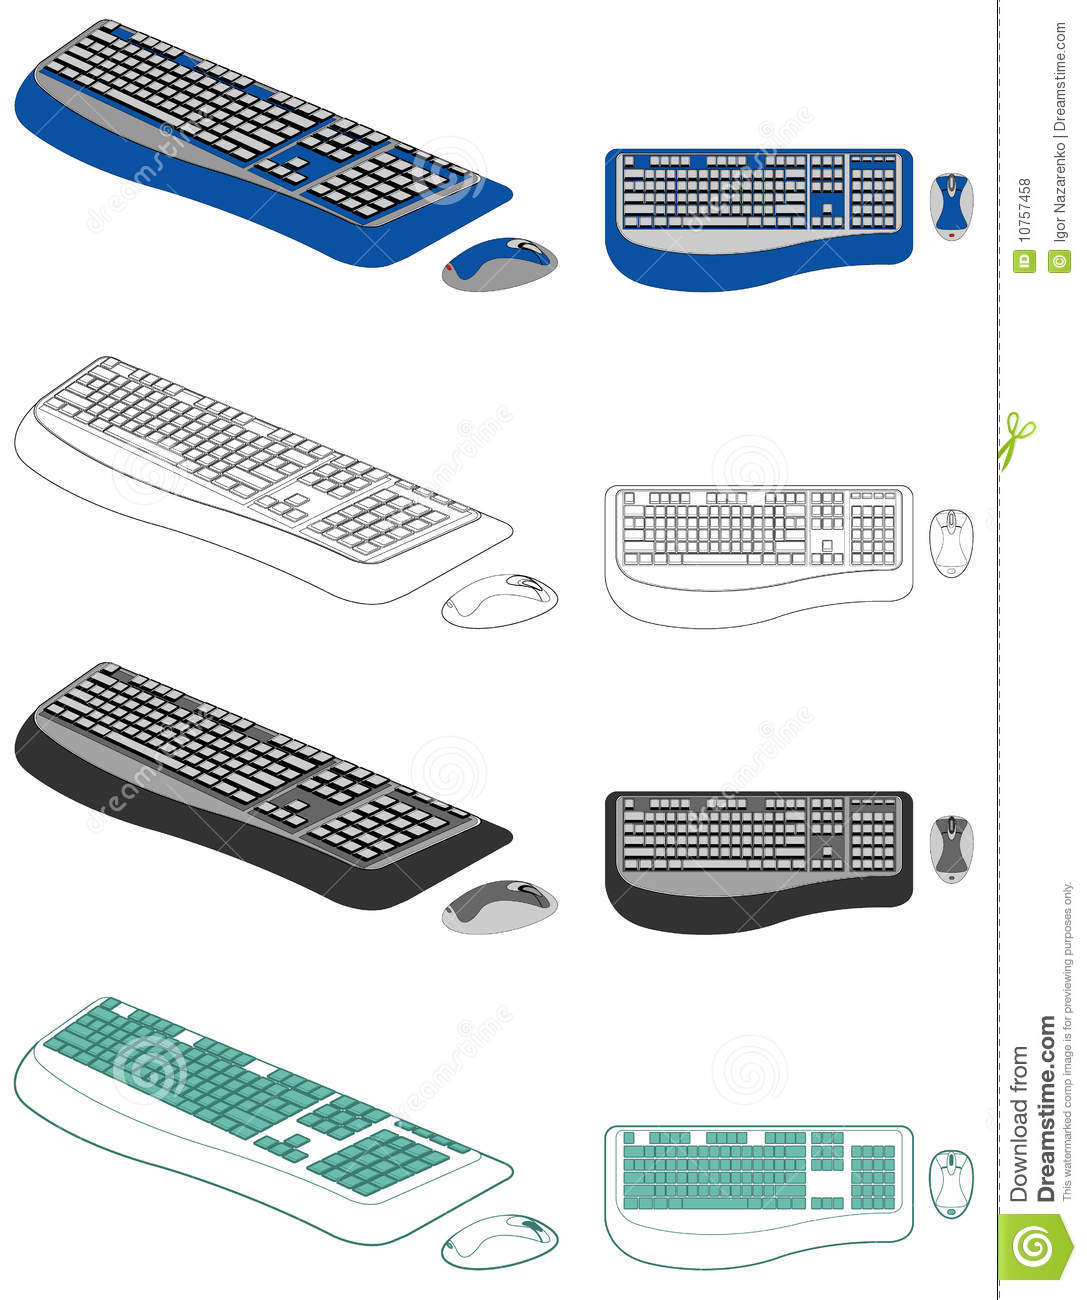 Illustration of computer keyboard and mouse in different styles